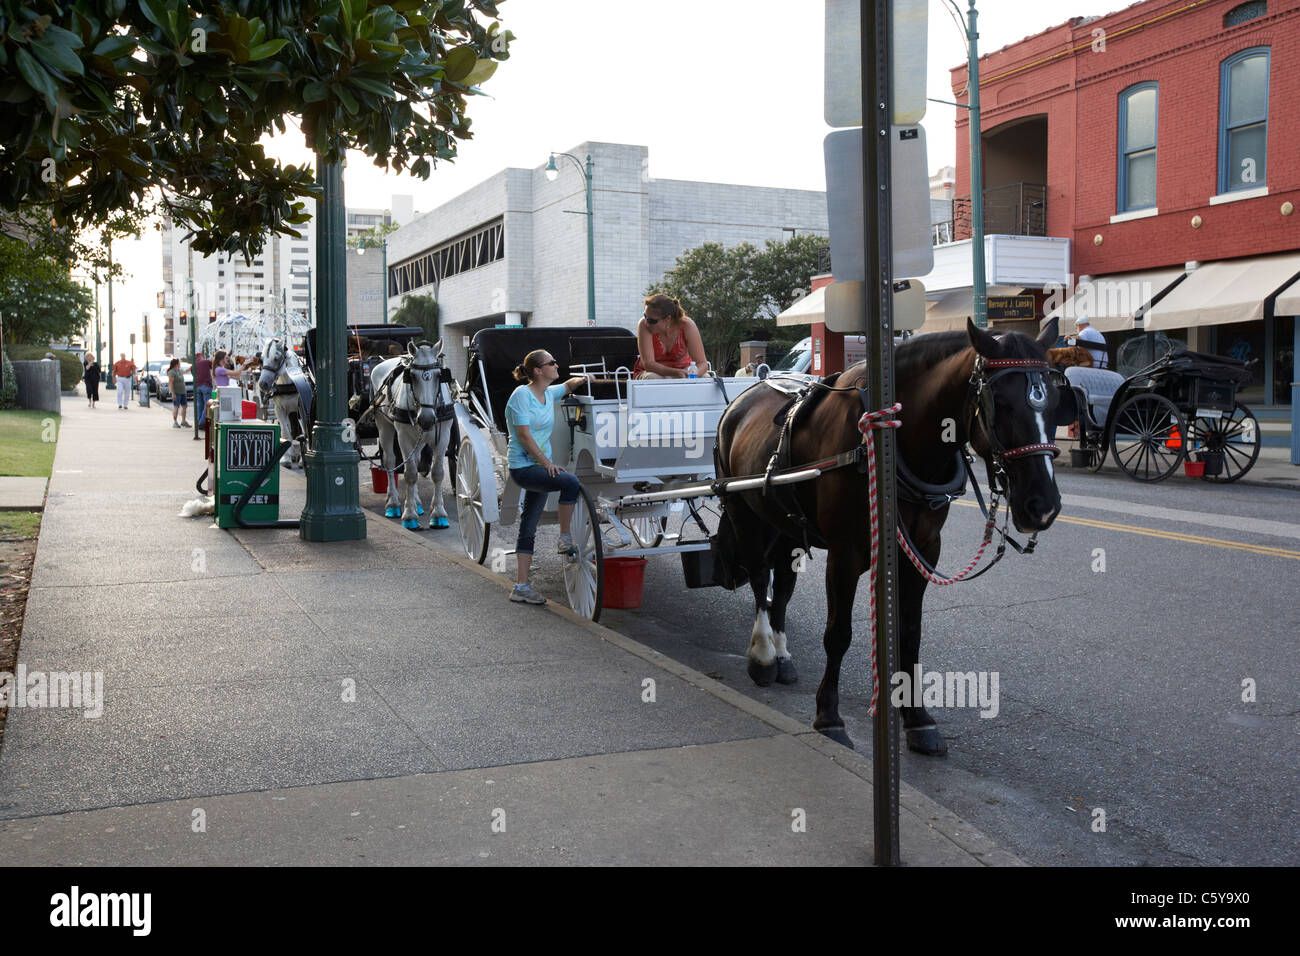 tourist horse and carriages waiting on beale street in downtown memphis tennessee usa - Stock Image